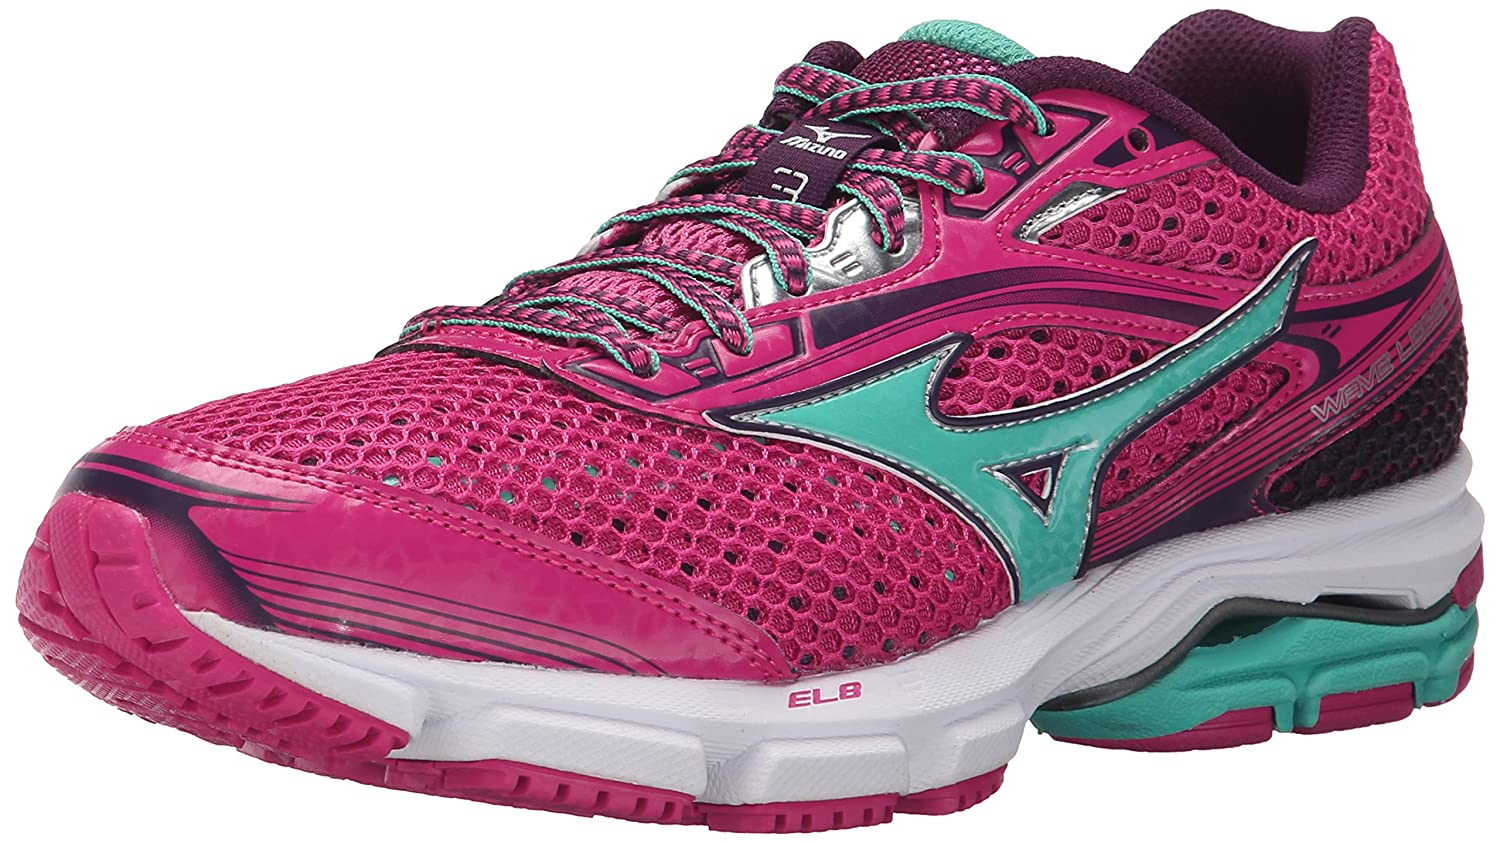 Mizuno Women's Wave Legend 3 Running Shoe B012H5V9TG 6.5 B(M) US|Fuchsia Purple/Waterfall